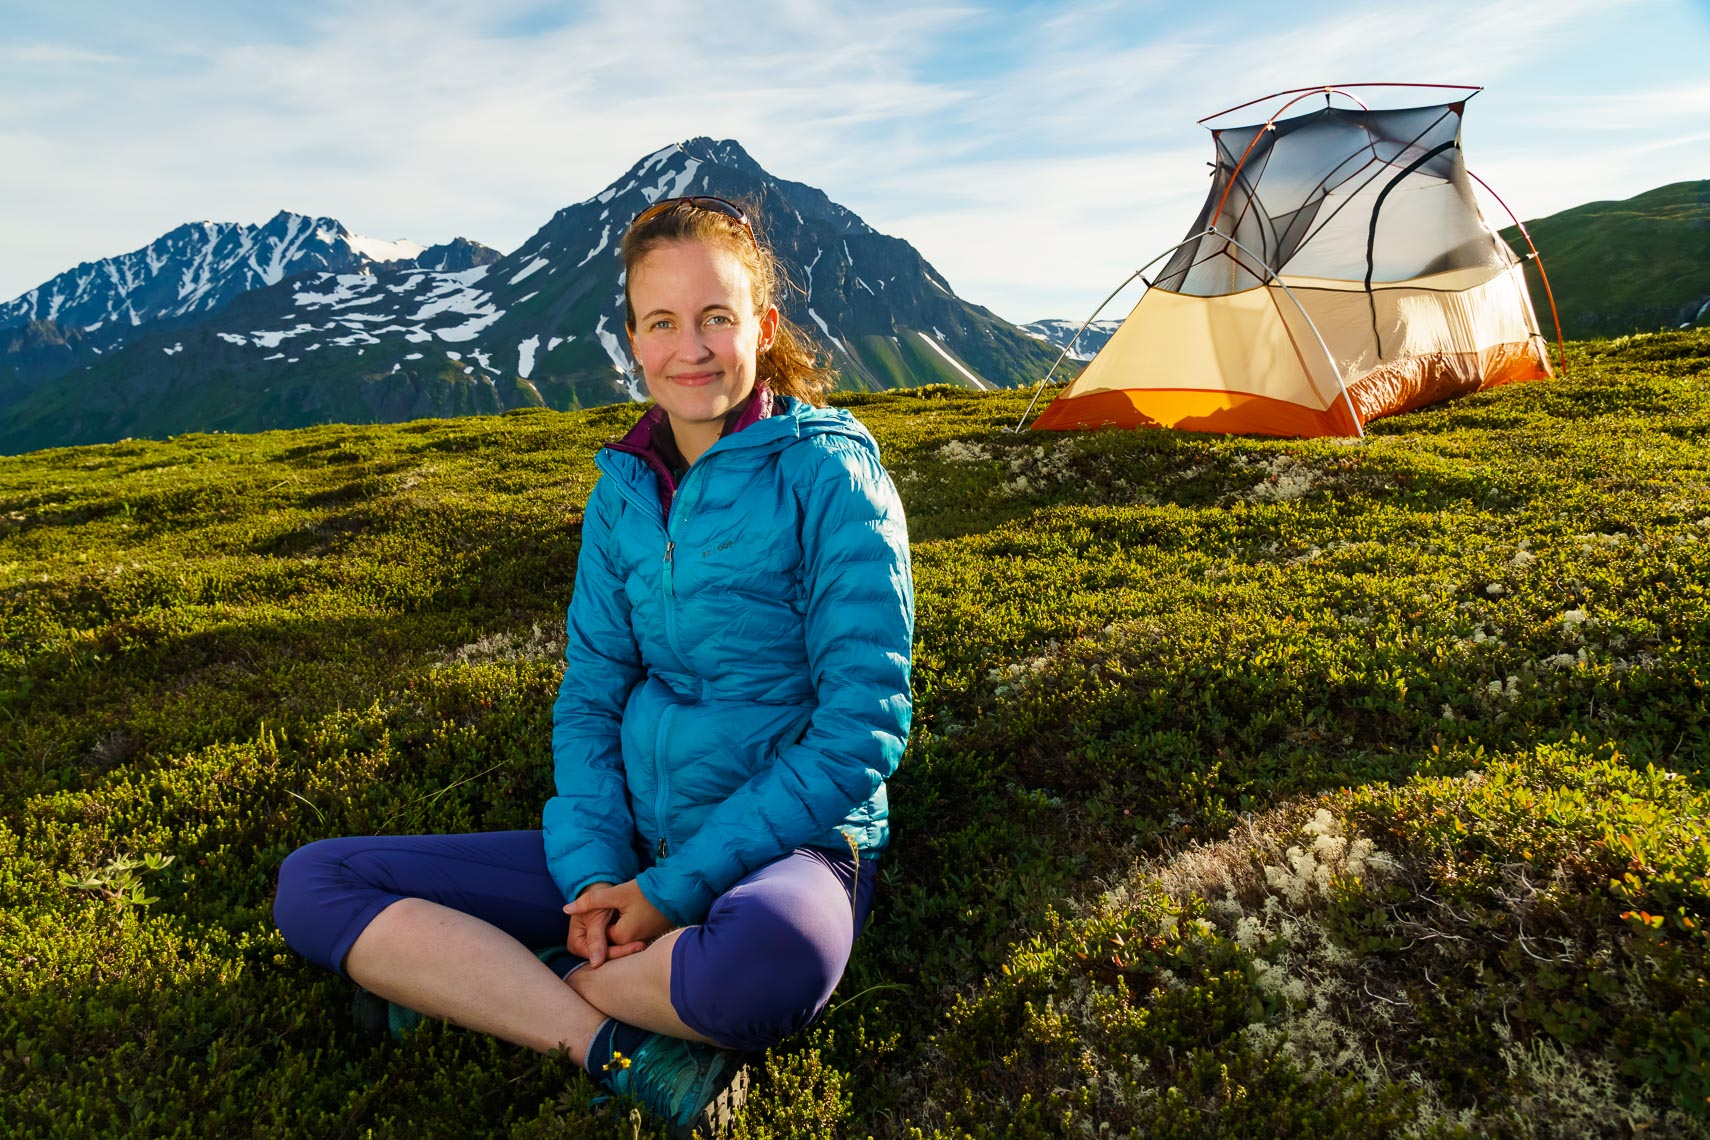 Alaska Hiker At Camp | Michael DeYoung Photography